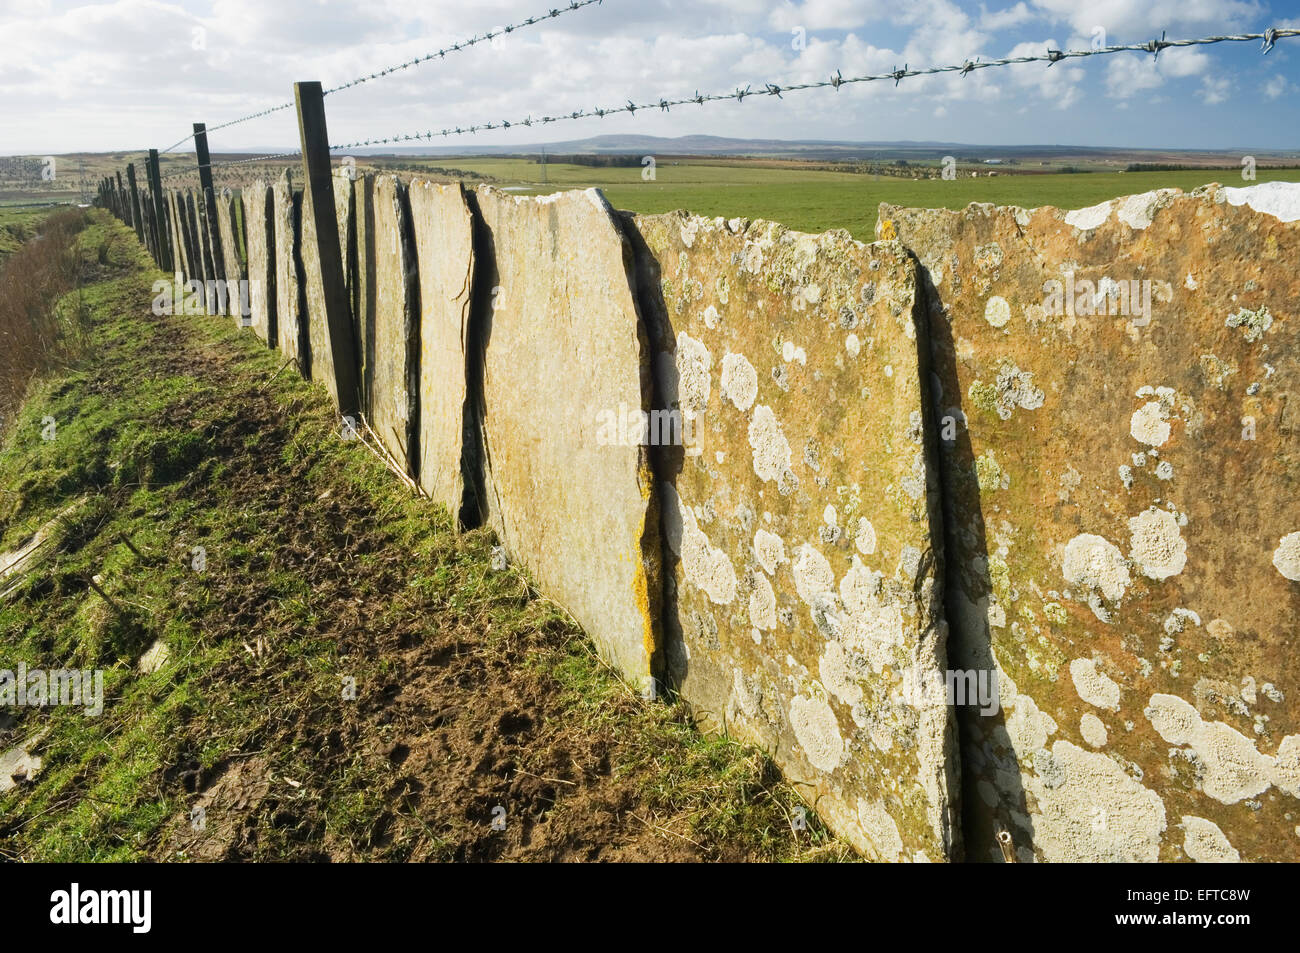 Traditional Caithness drystane dyke using flat sandstone 'flags'. - Stock Image